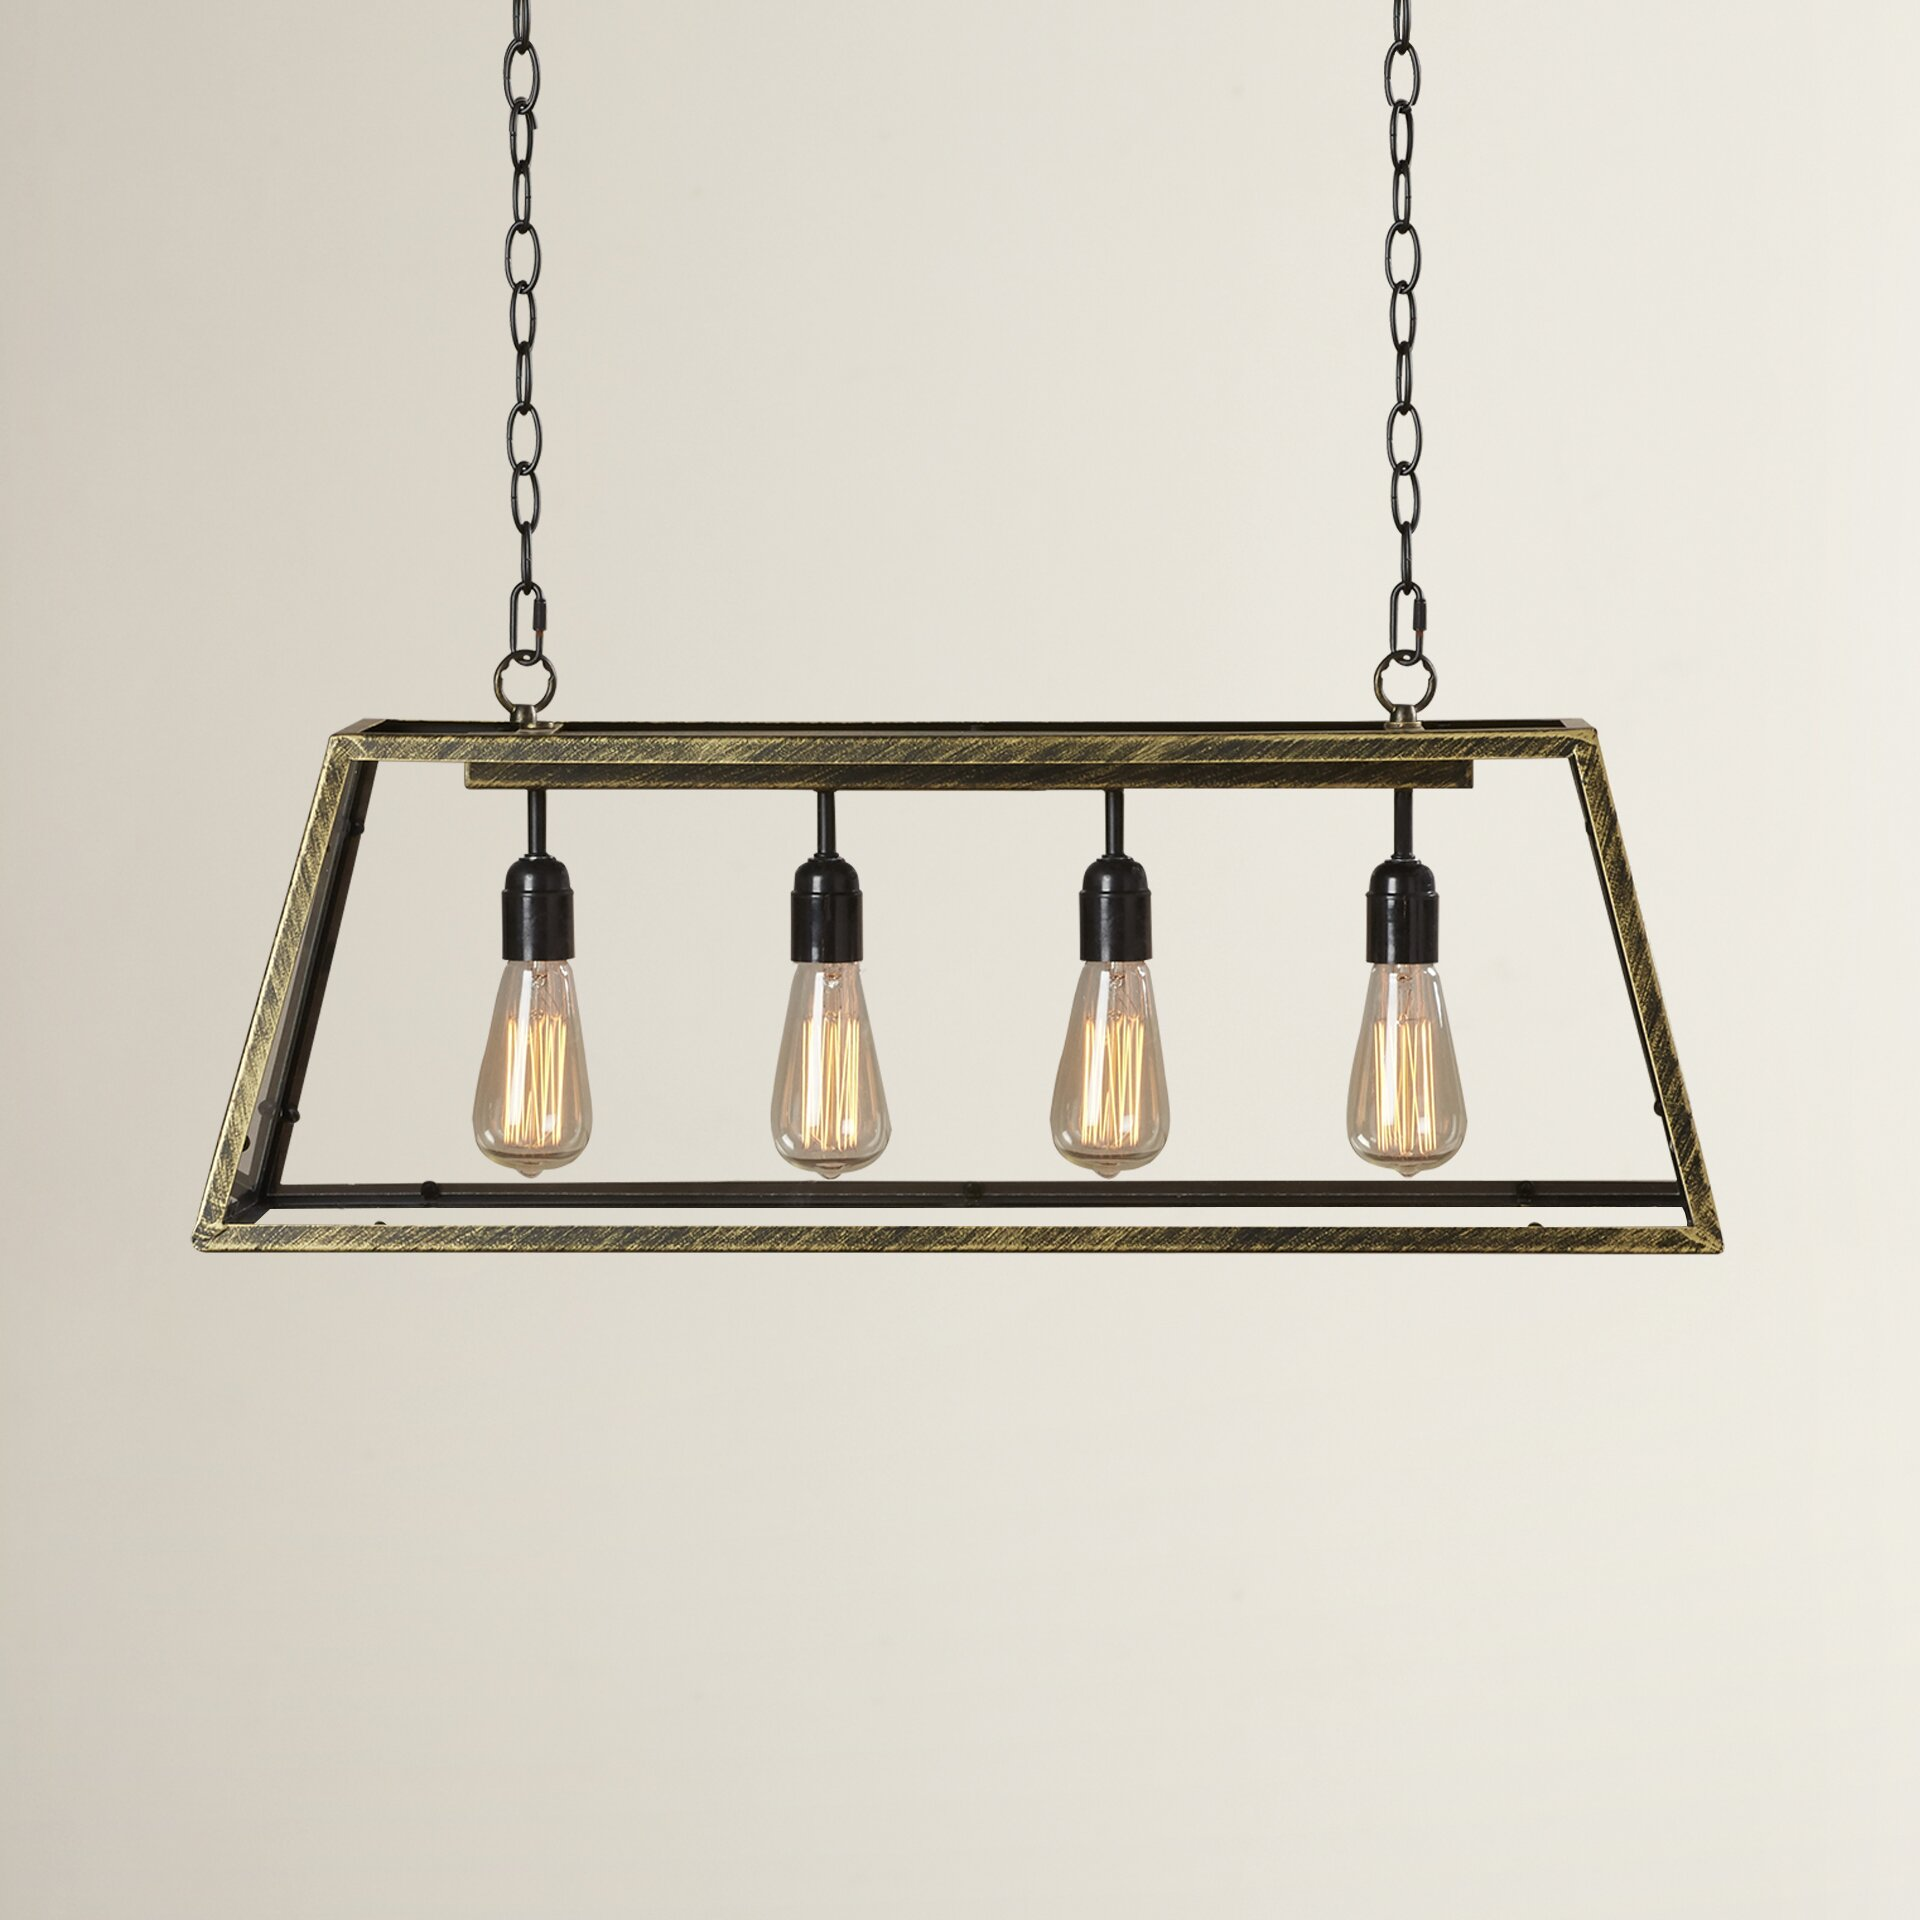 Kitchen Island Pendant Lighting: Trent Austin Design Suisun City 4 Light Kitchen Island